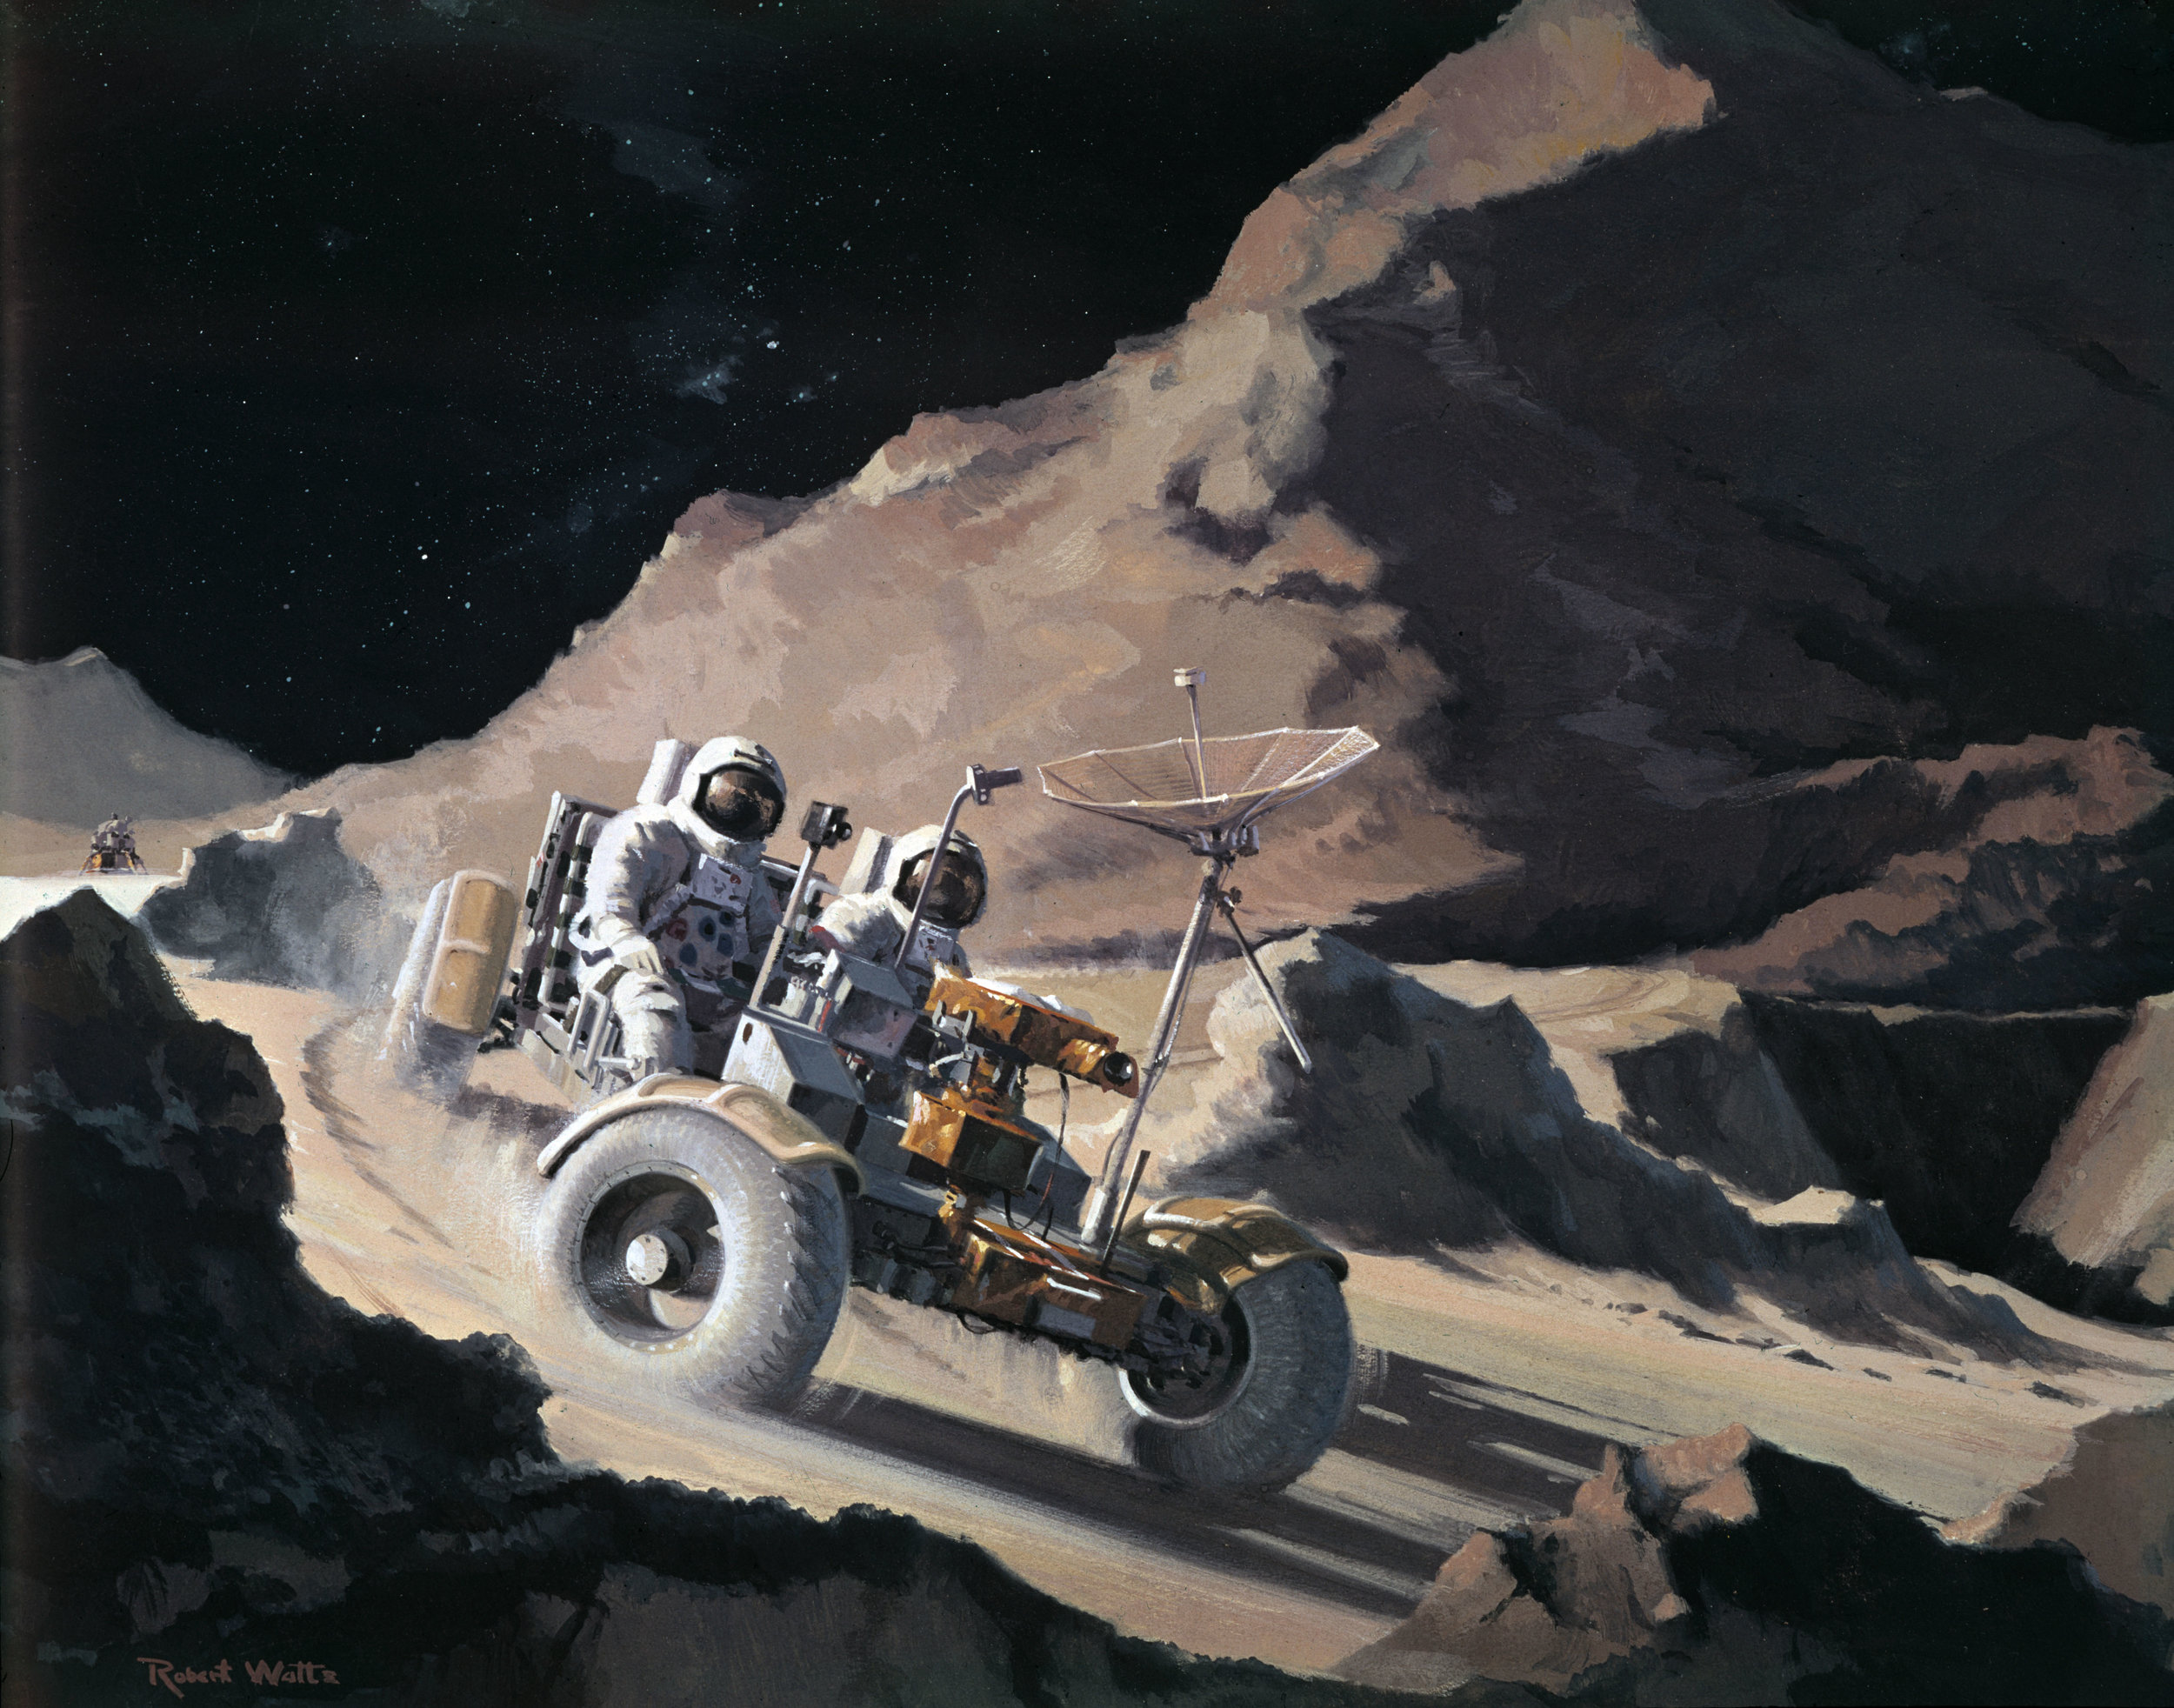 An artists impression of the Lunar Roving Vehicle